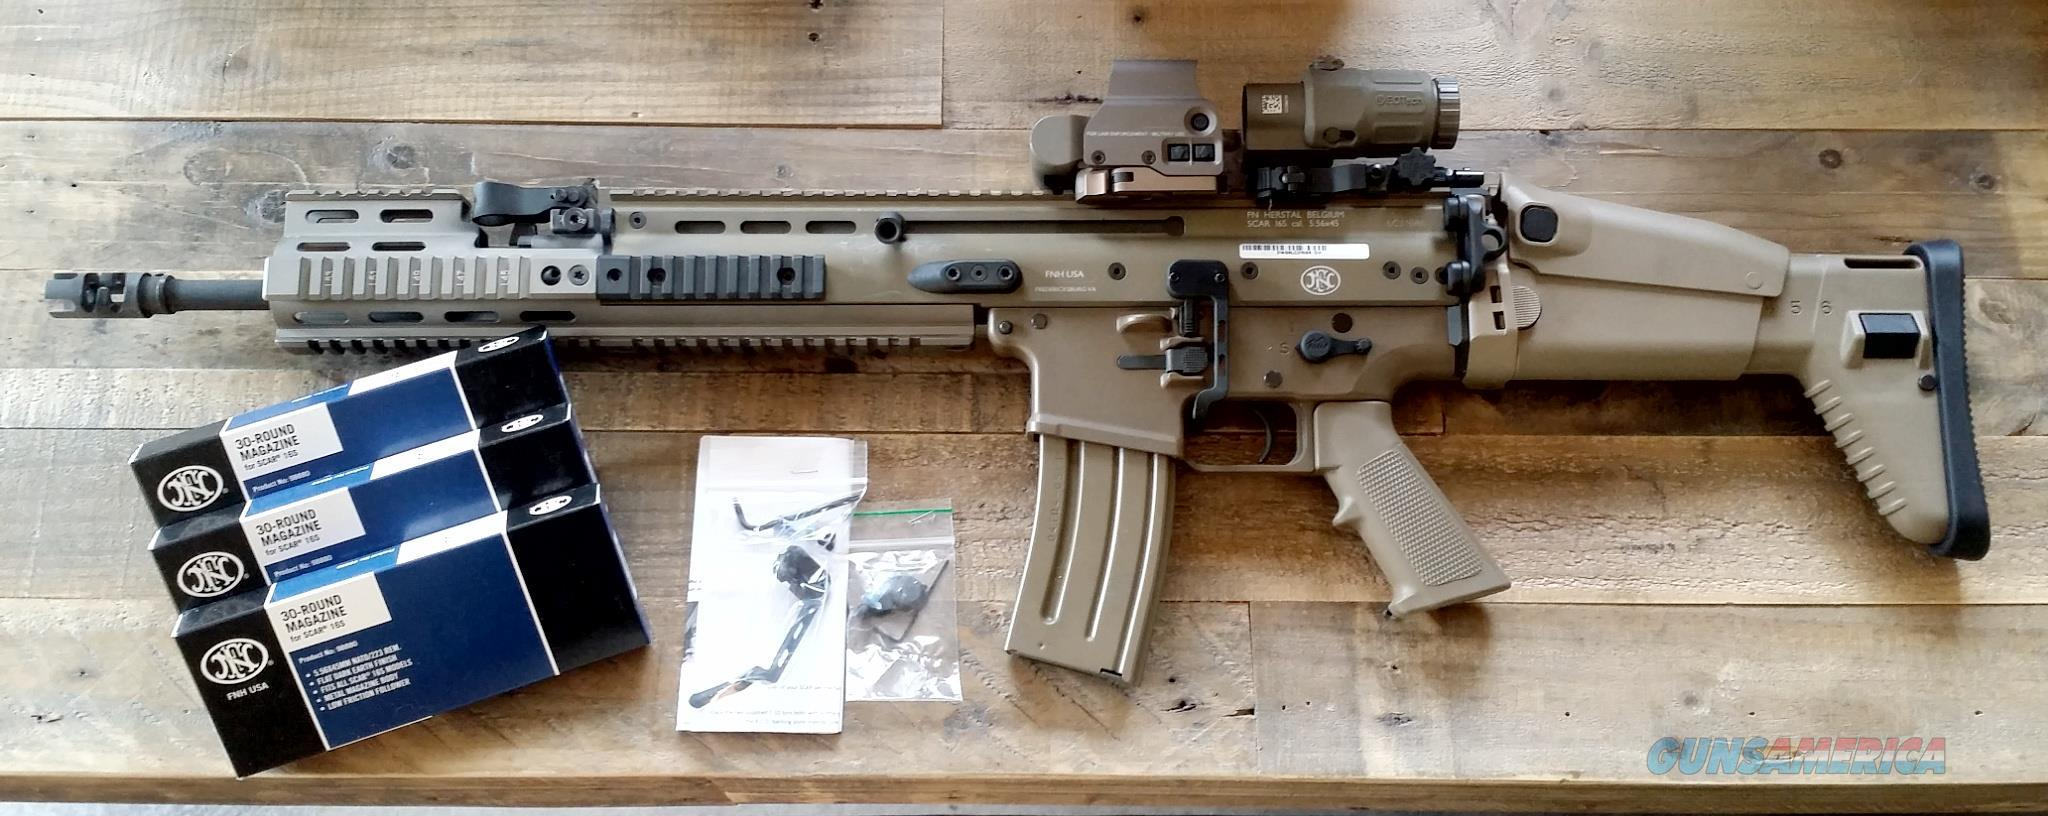 FN SCAR 16 FDE  Guns > Rifles > FNH - Fabrique Nationale (FN) Rifles > Semi-auto > Other